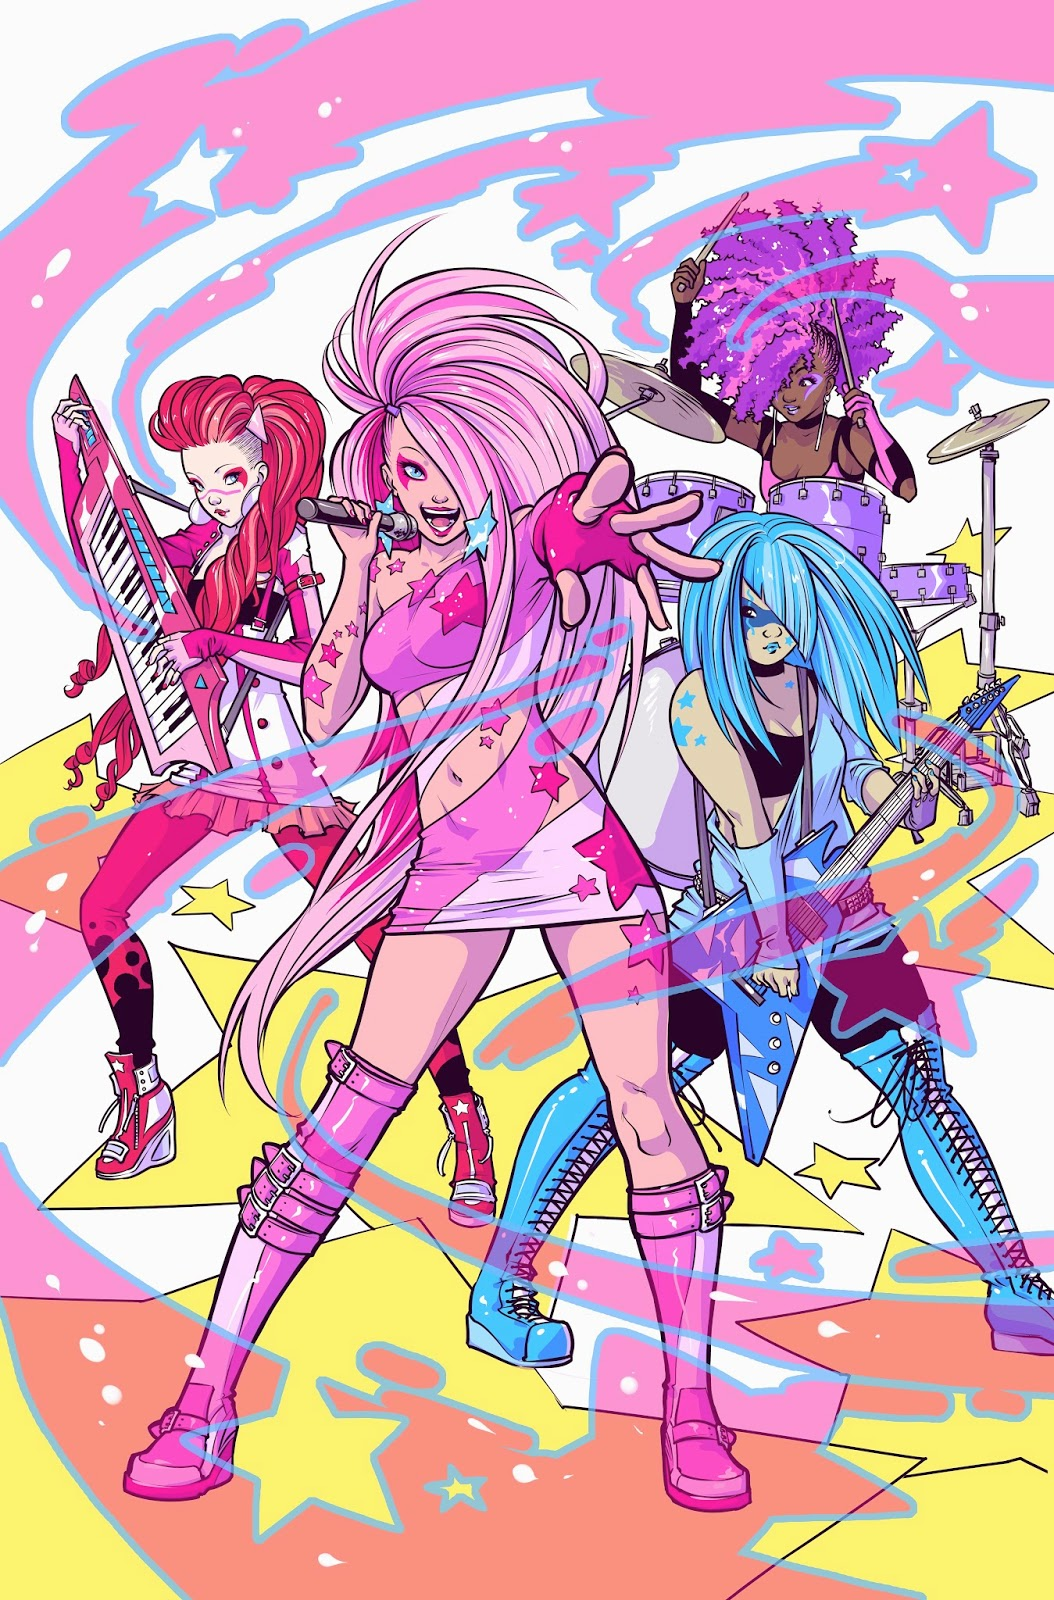 Jem and the Holograms - Receiving a totally outrageous reboot in comic form